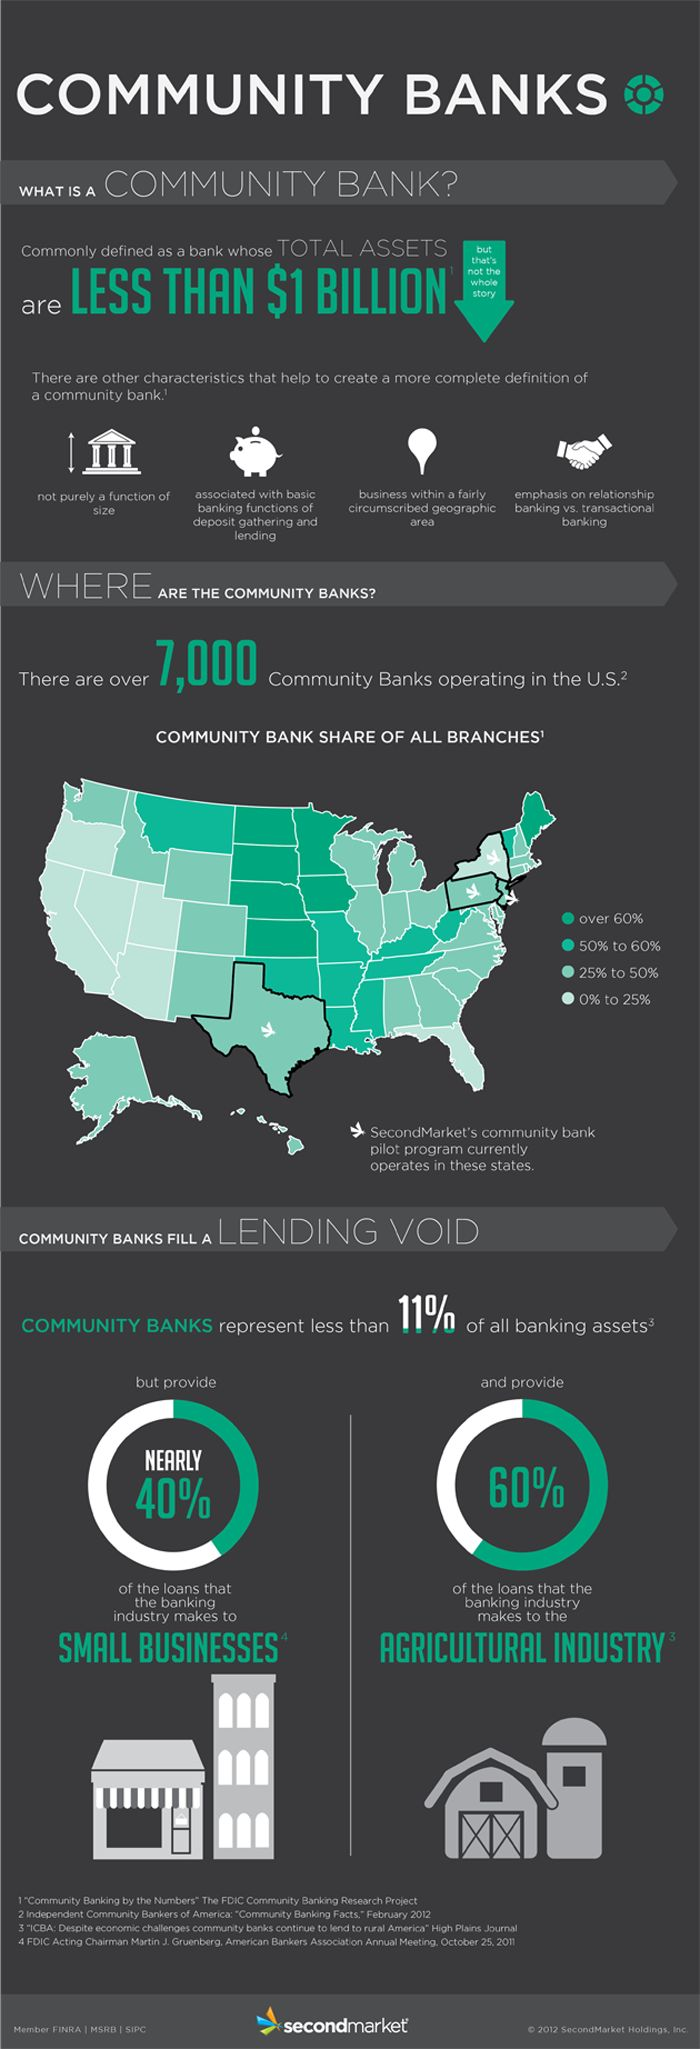 95 best Banking Insights images on Pinterest | Banks, Blog and Branches